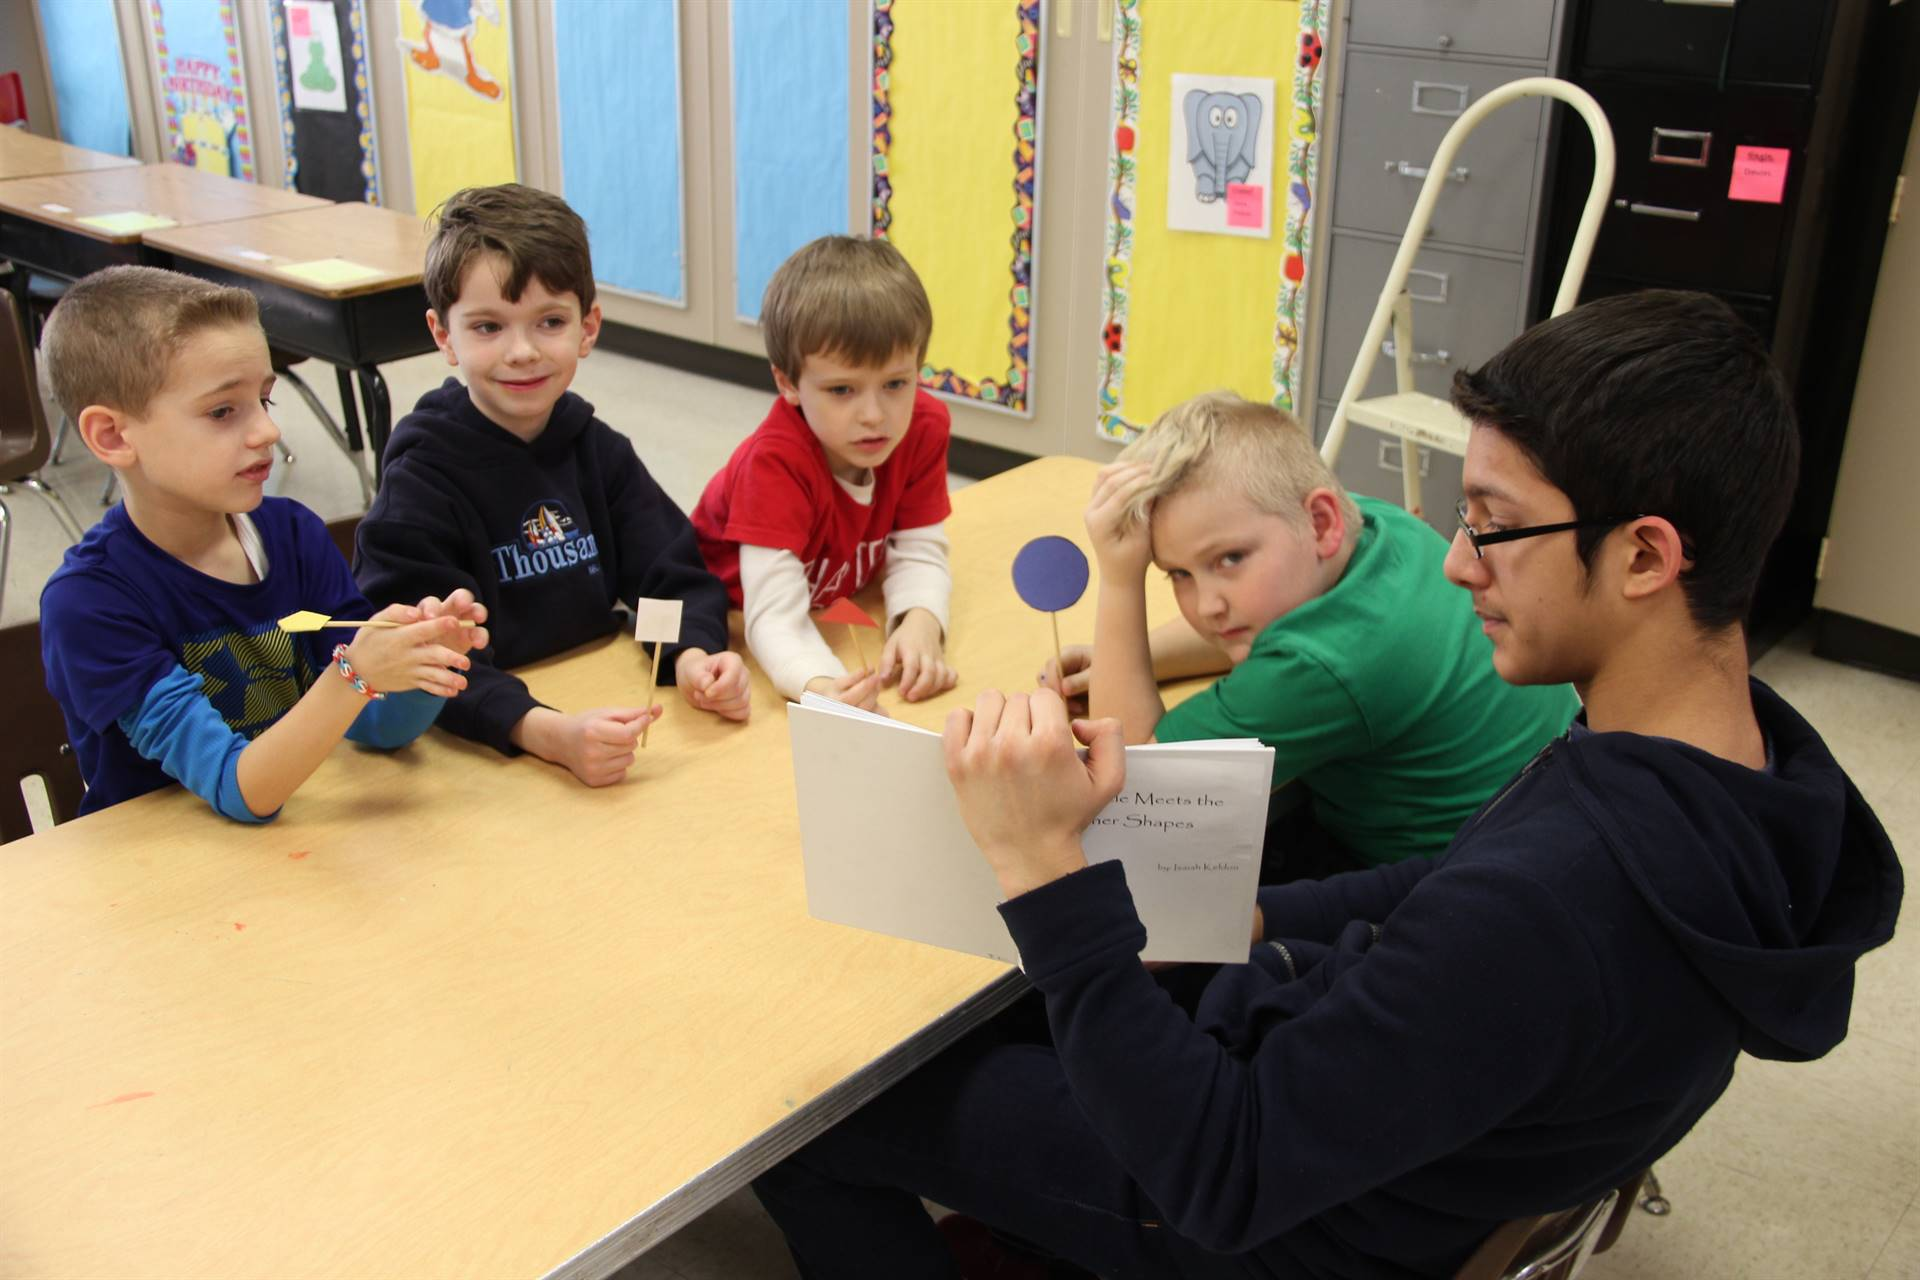 high school student reading book as four elementary students listen